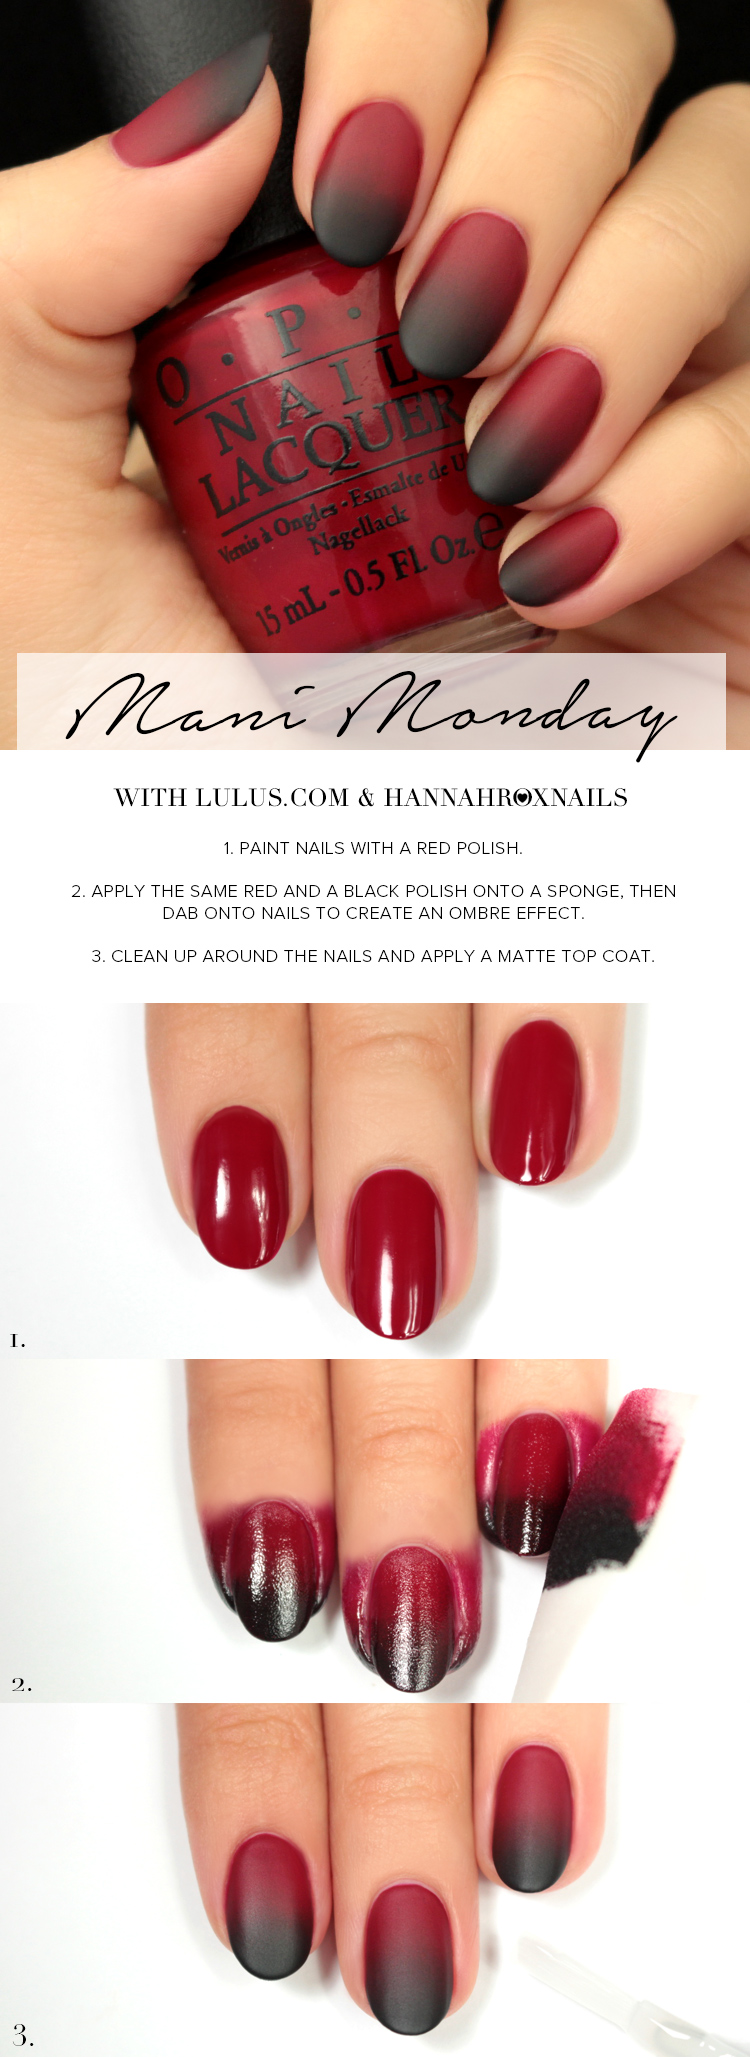 Black Red Ombre Nails : black, ombre, nails, Monday:, Black, Ombre, Tutorial, Lulus.com, Fashion